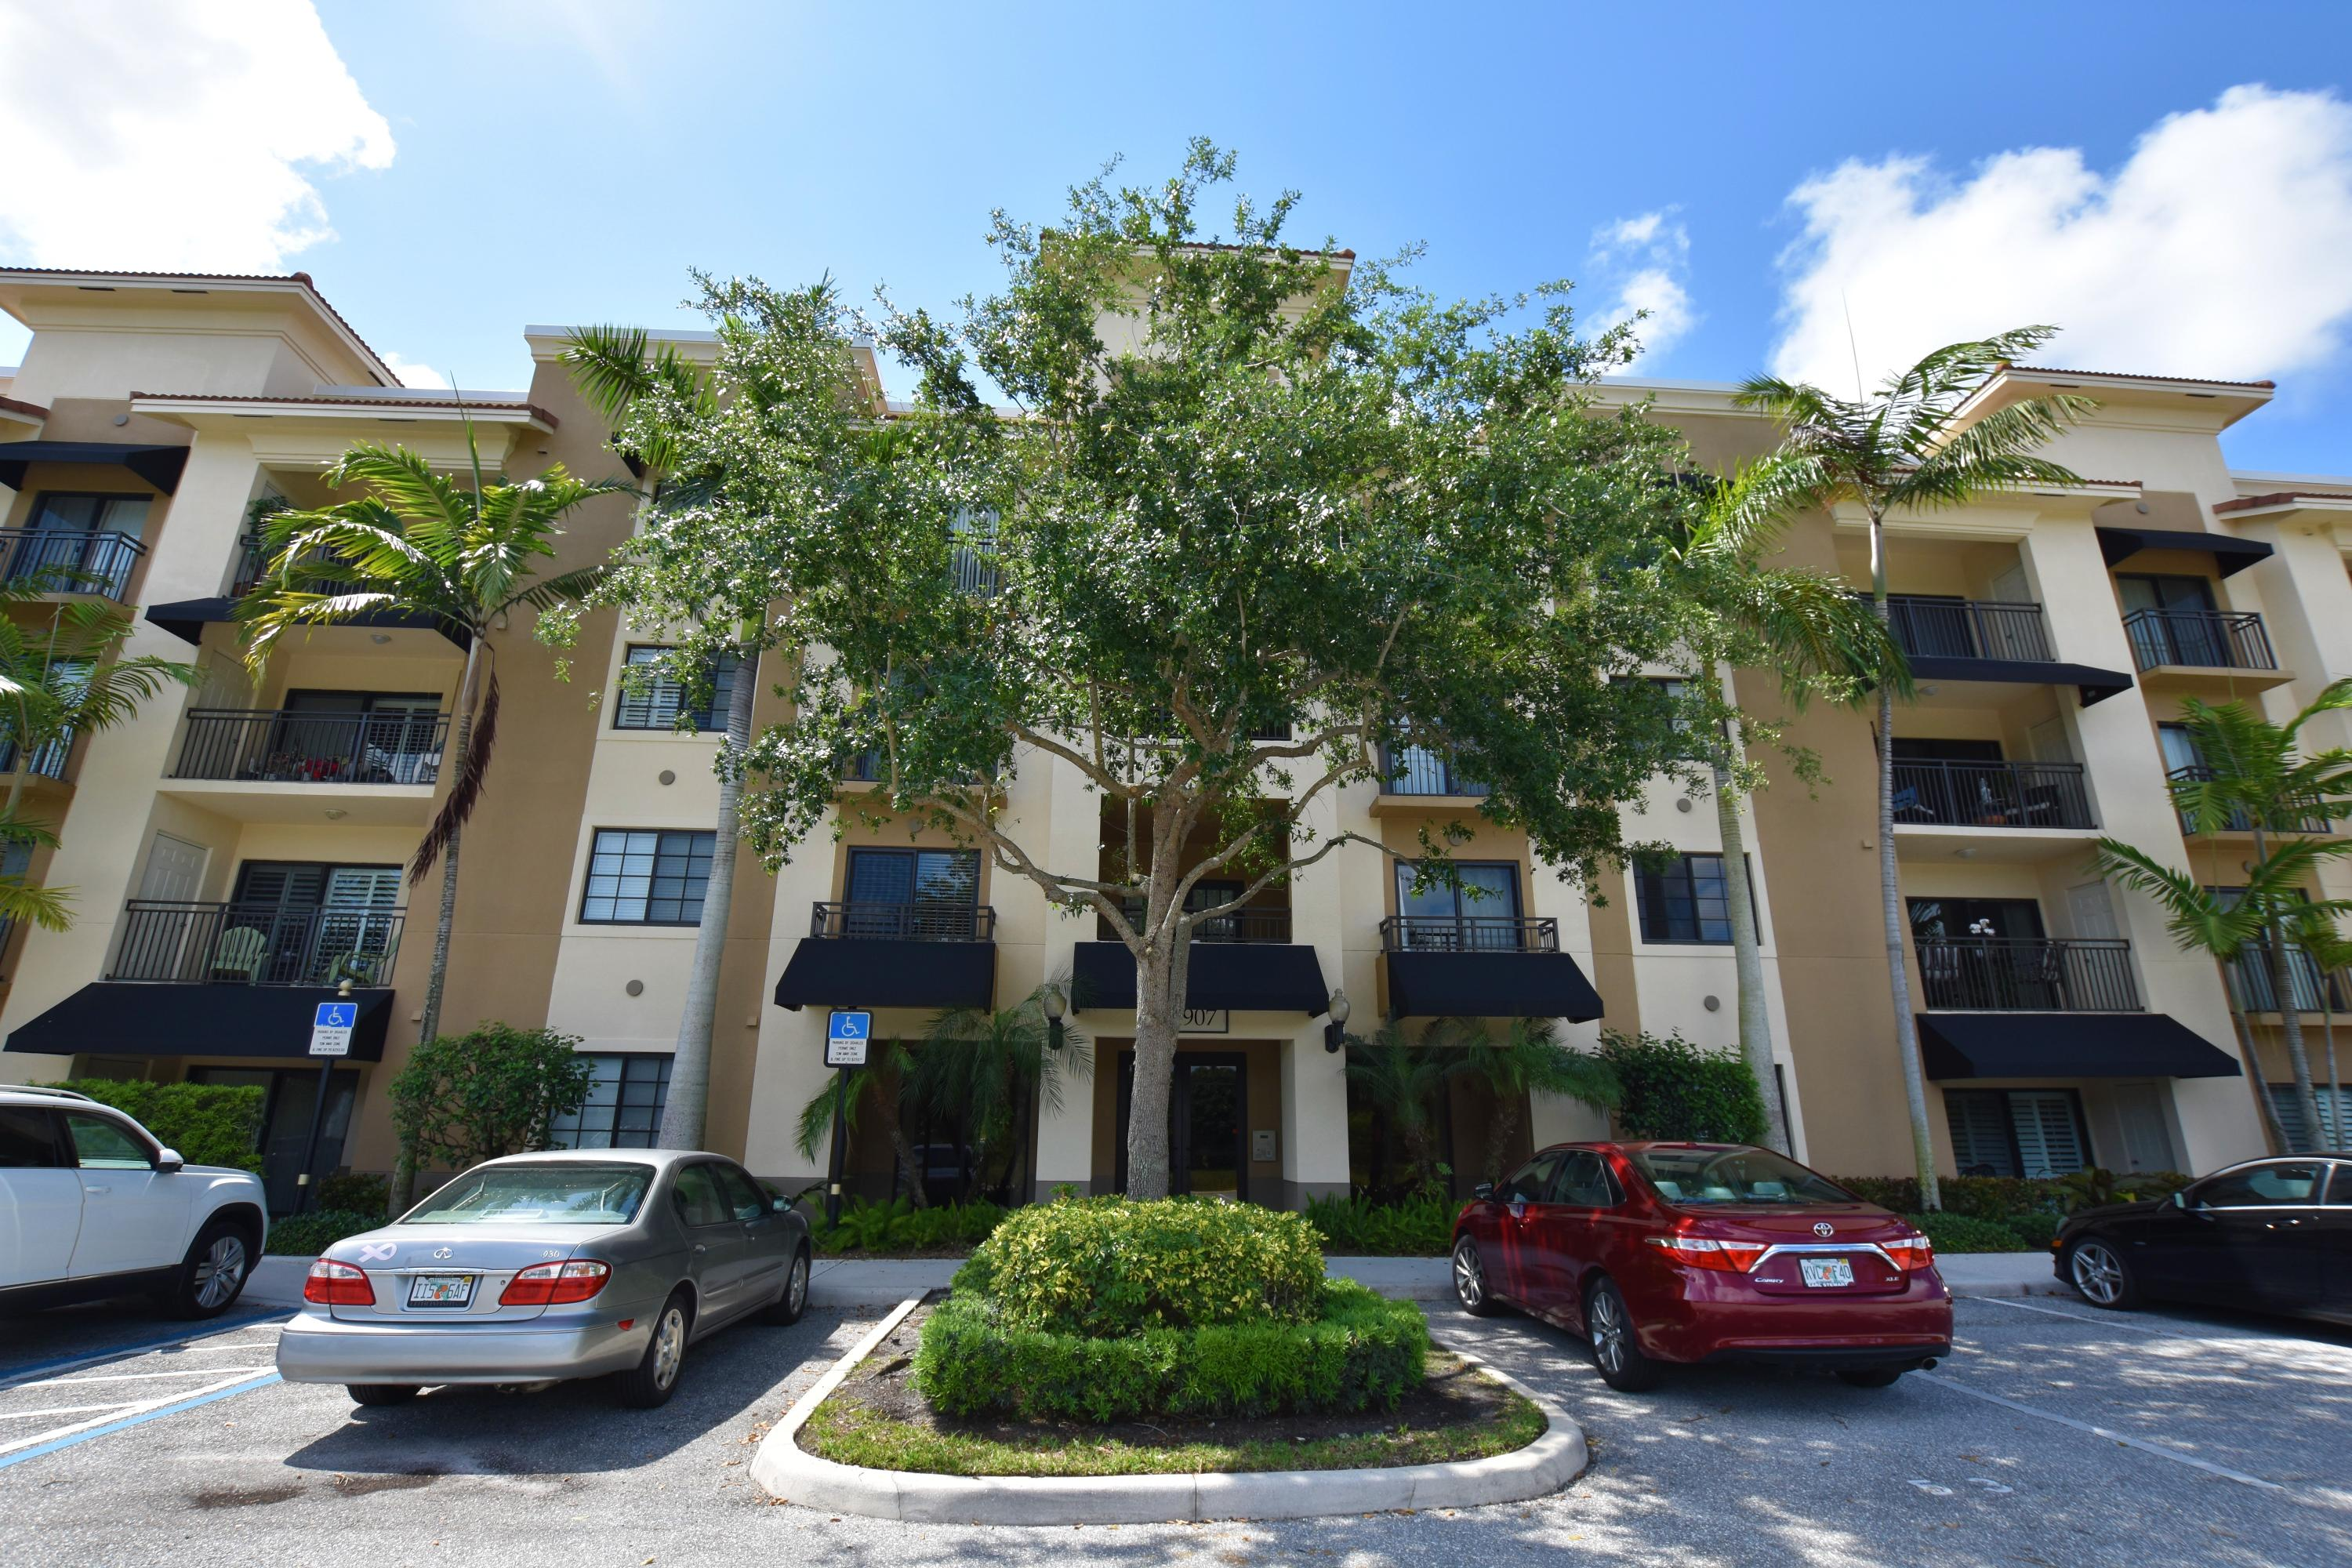 Available from Sept. 7th. Luxury 1/1 condominium on 3rd floor in desirable gated Residence At Midtown. Secure building entrance. Open Kitchen to living room, dining area and private balcony with storage and garden view. Kitchen has granite counter tops, stainless steel appliances. Other upgrades are: crown moldings, hurricane impact window, large washer and dryer inside. Resort style living, swimming pool w/ spa, modern clubhouse w/ gym, media/ business center, kitchen, manager on site. Conveniently located in the middle of upscale dining, shopping, festivals...Minutes to Turnpike, I-95, ocean...